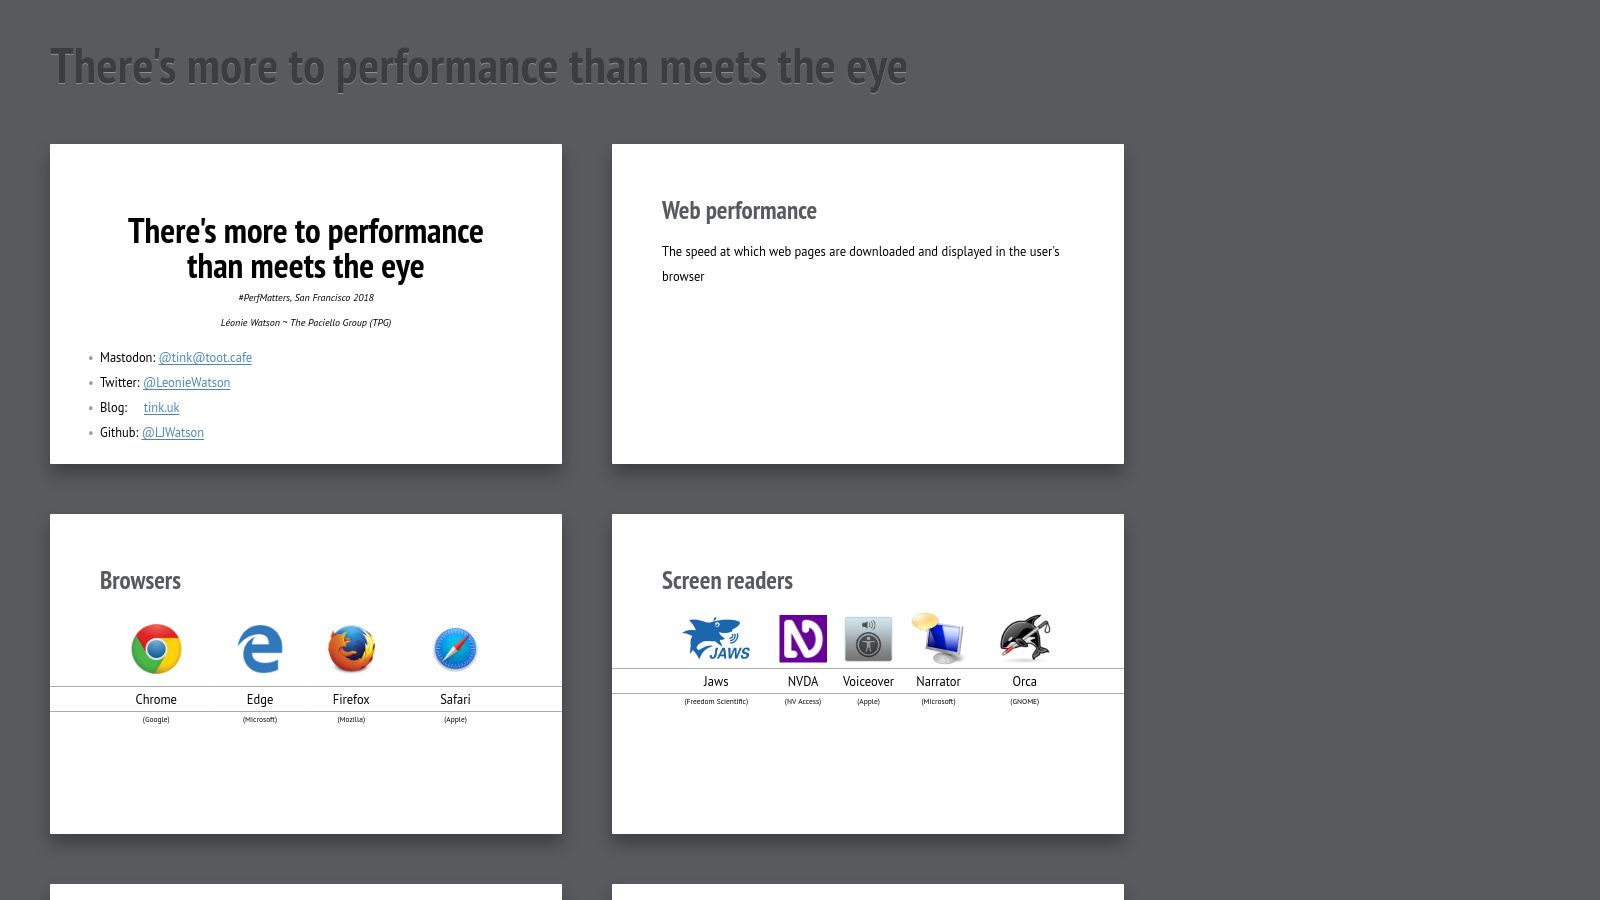 There's more to performance than meets the eye